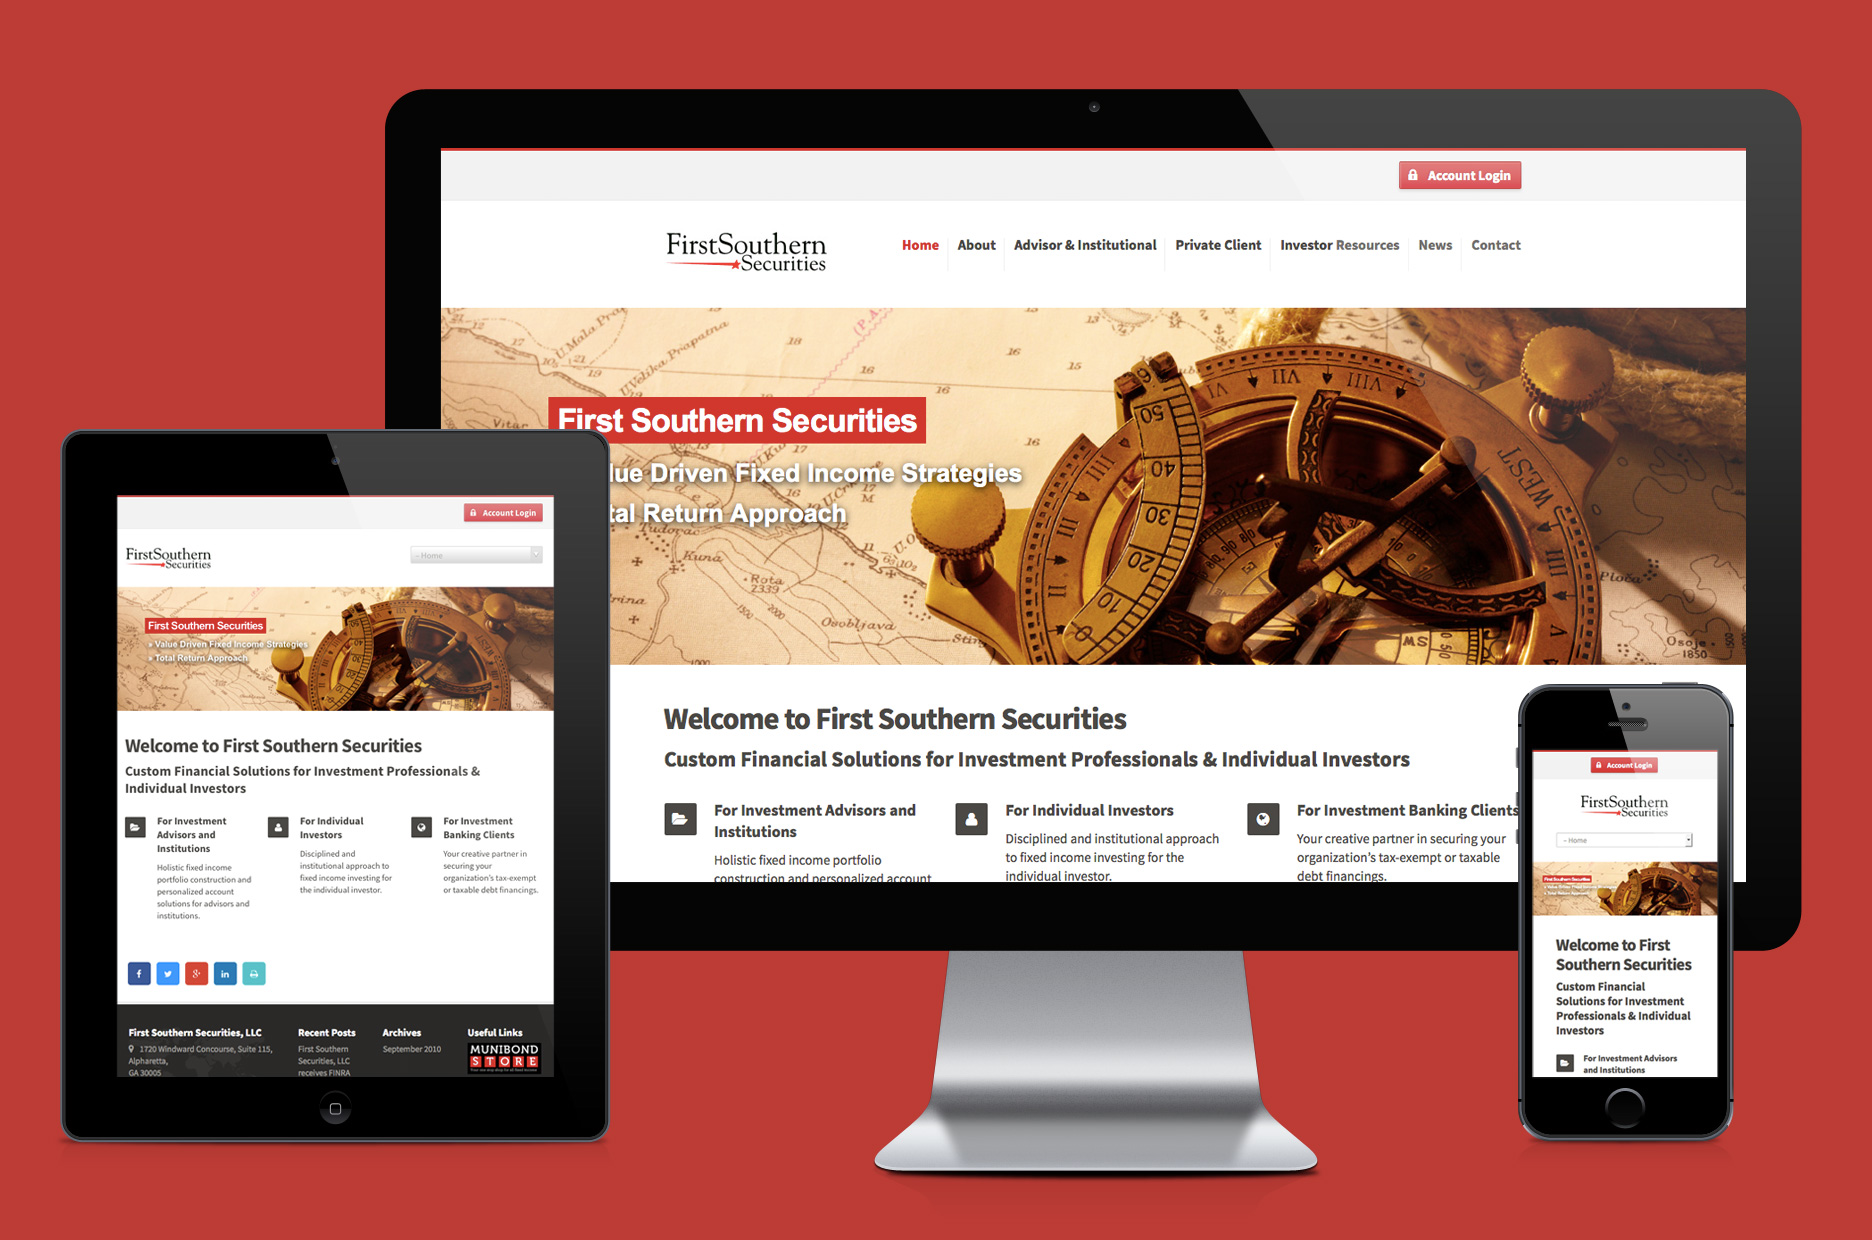 First Southern Securities website